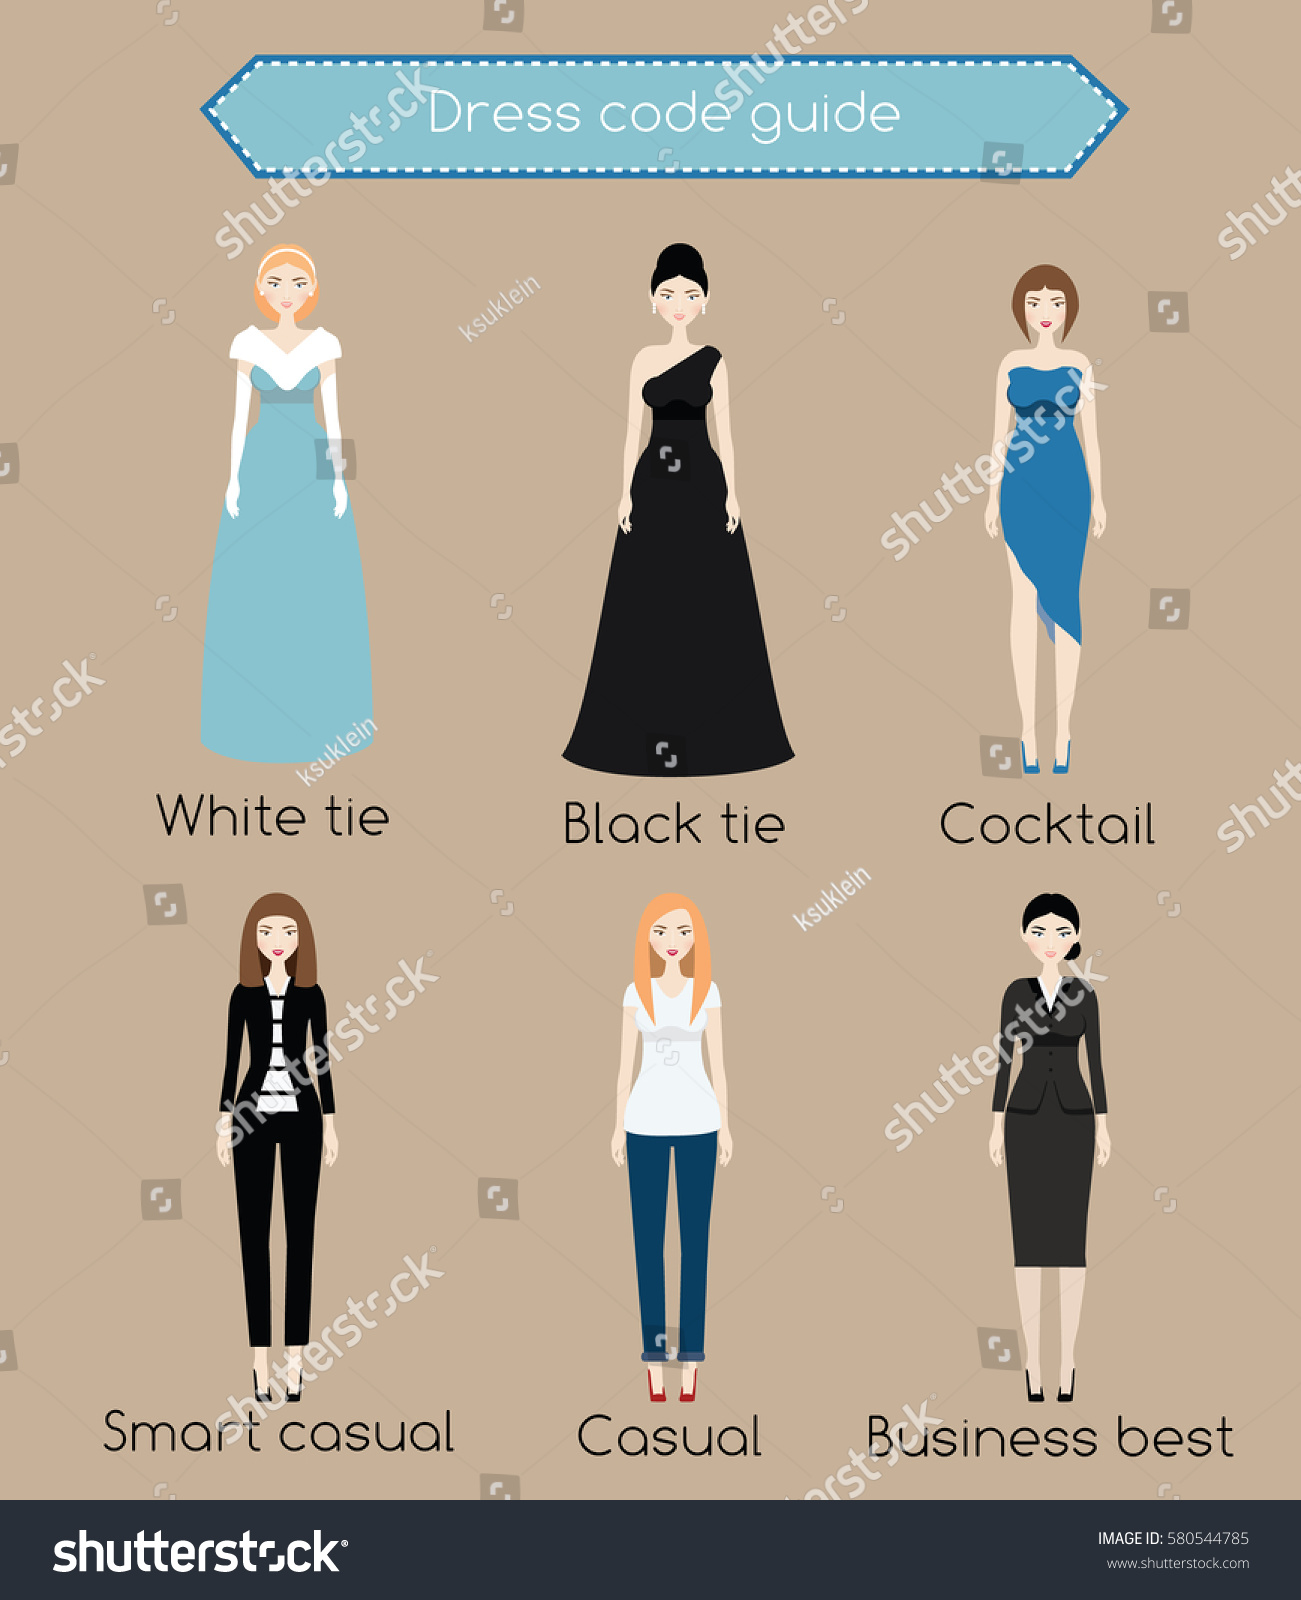 To acquire Code Dress clothing pictures picture trends